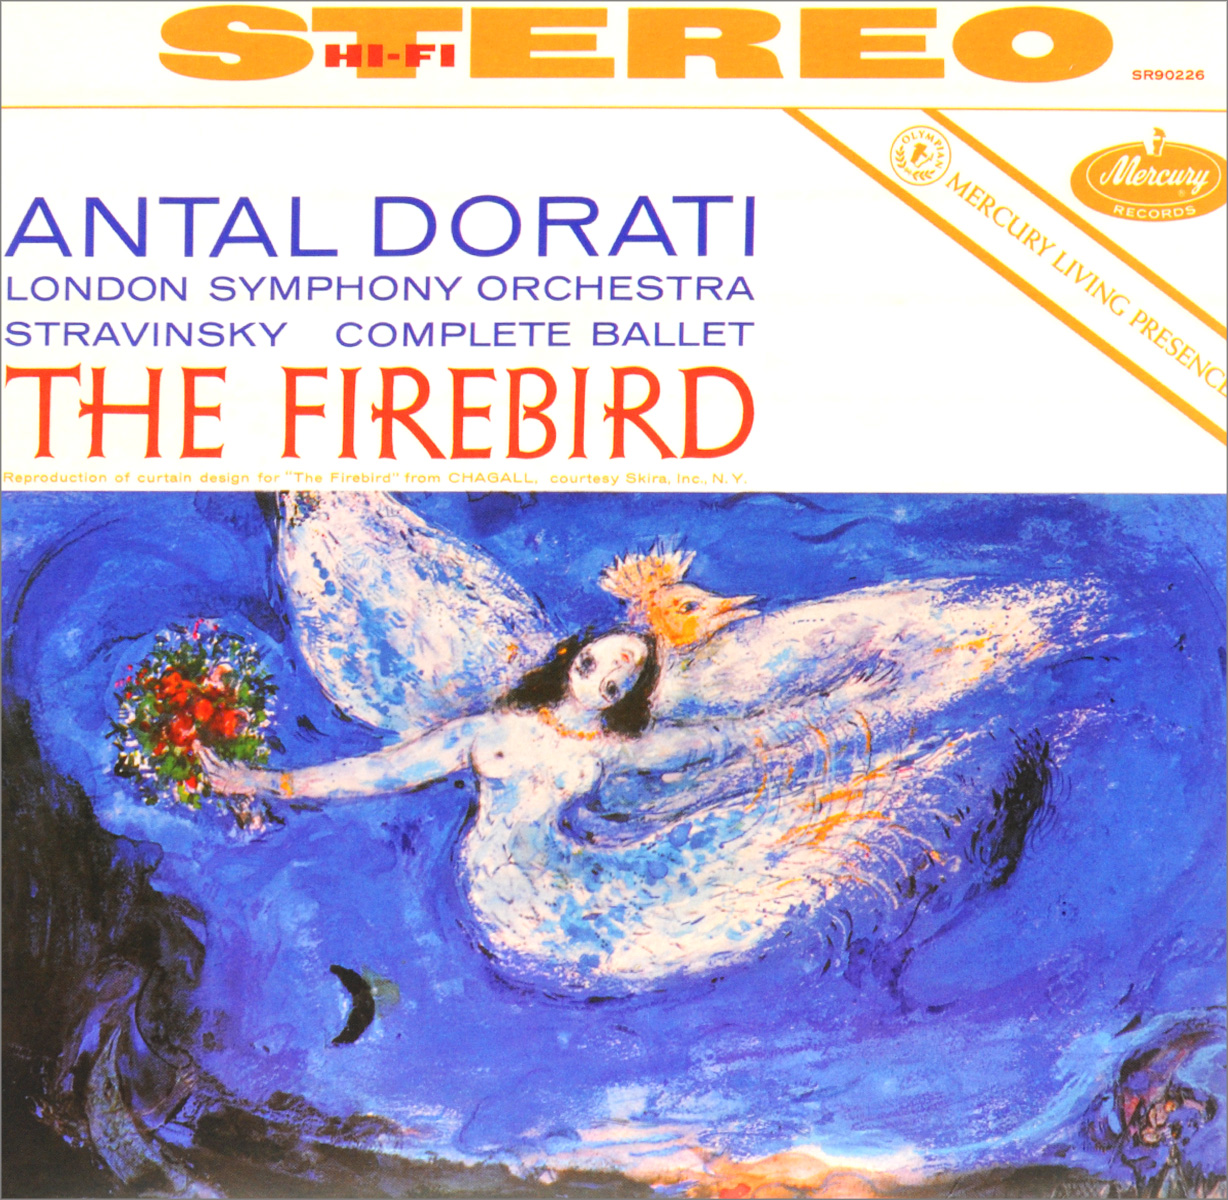 The London Symphony Orchestra Antal Dorati. London Symphony Orchestra. Stravinsky. The Firebird (LP)